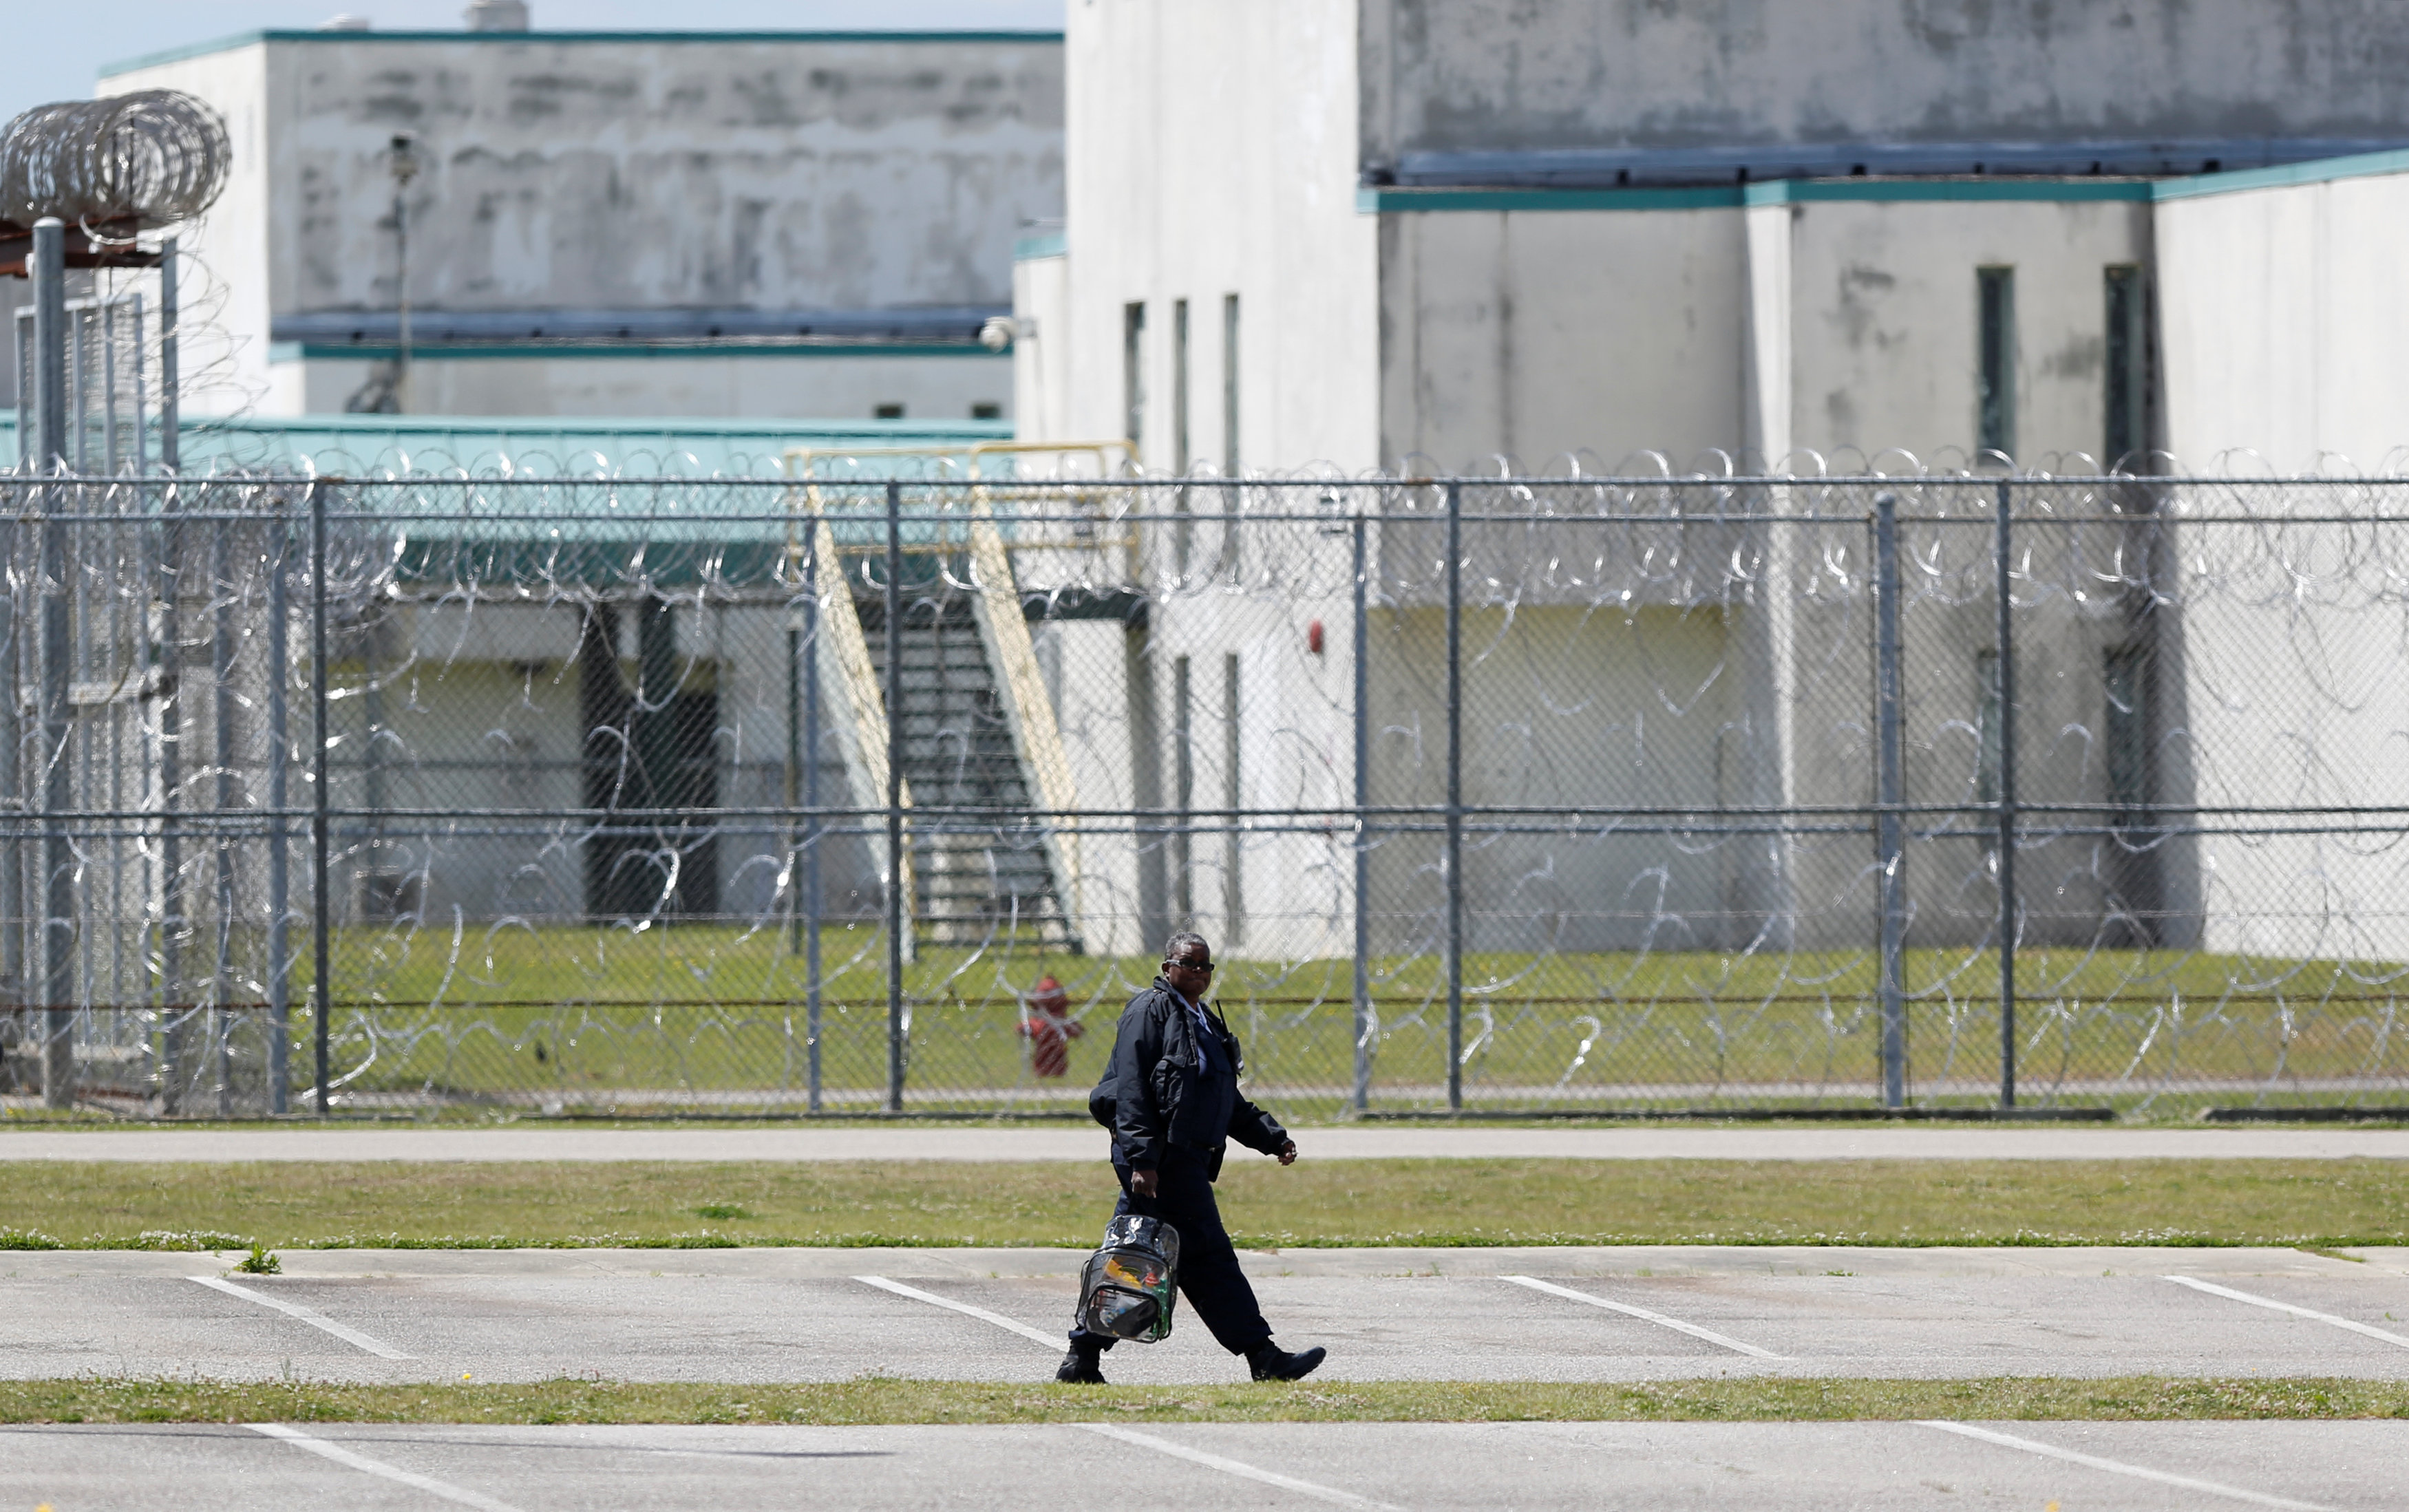 A guard leaves the Lee Correctional Institution in Bishopville, Lee County, South Carolina, U.S., April 16, 2018. REUTERS/Randall Hill